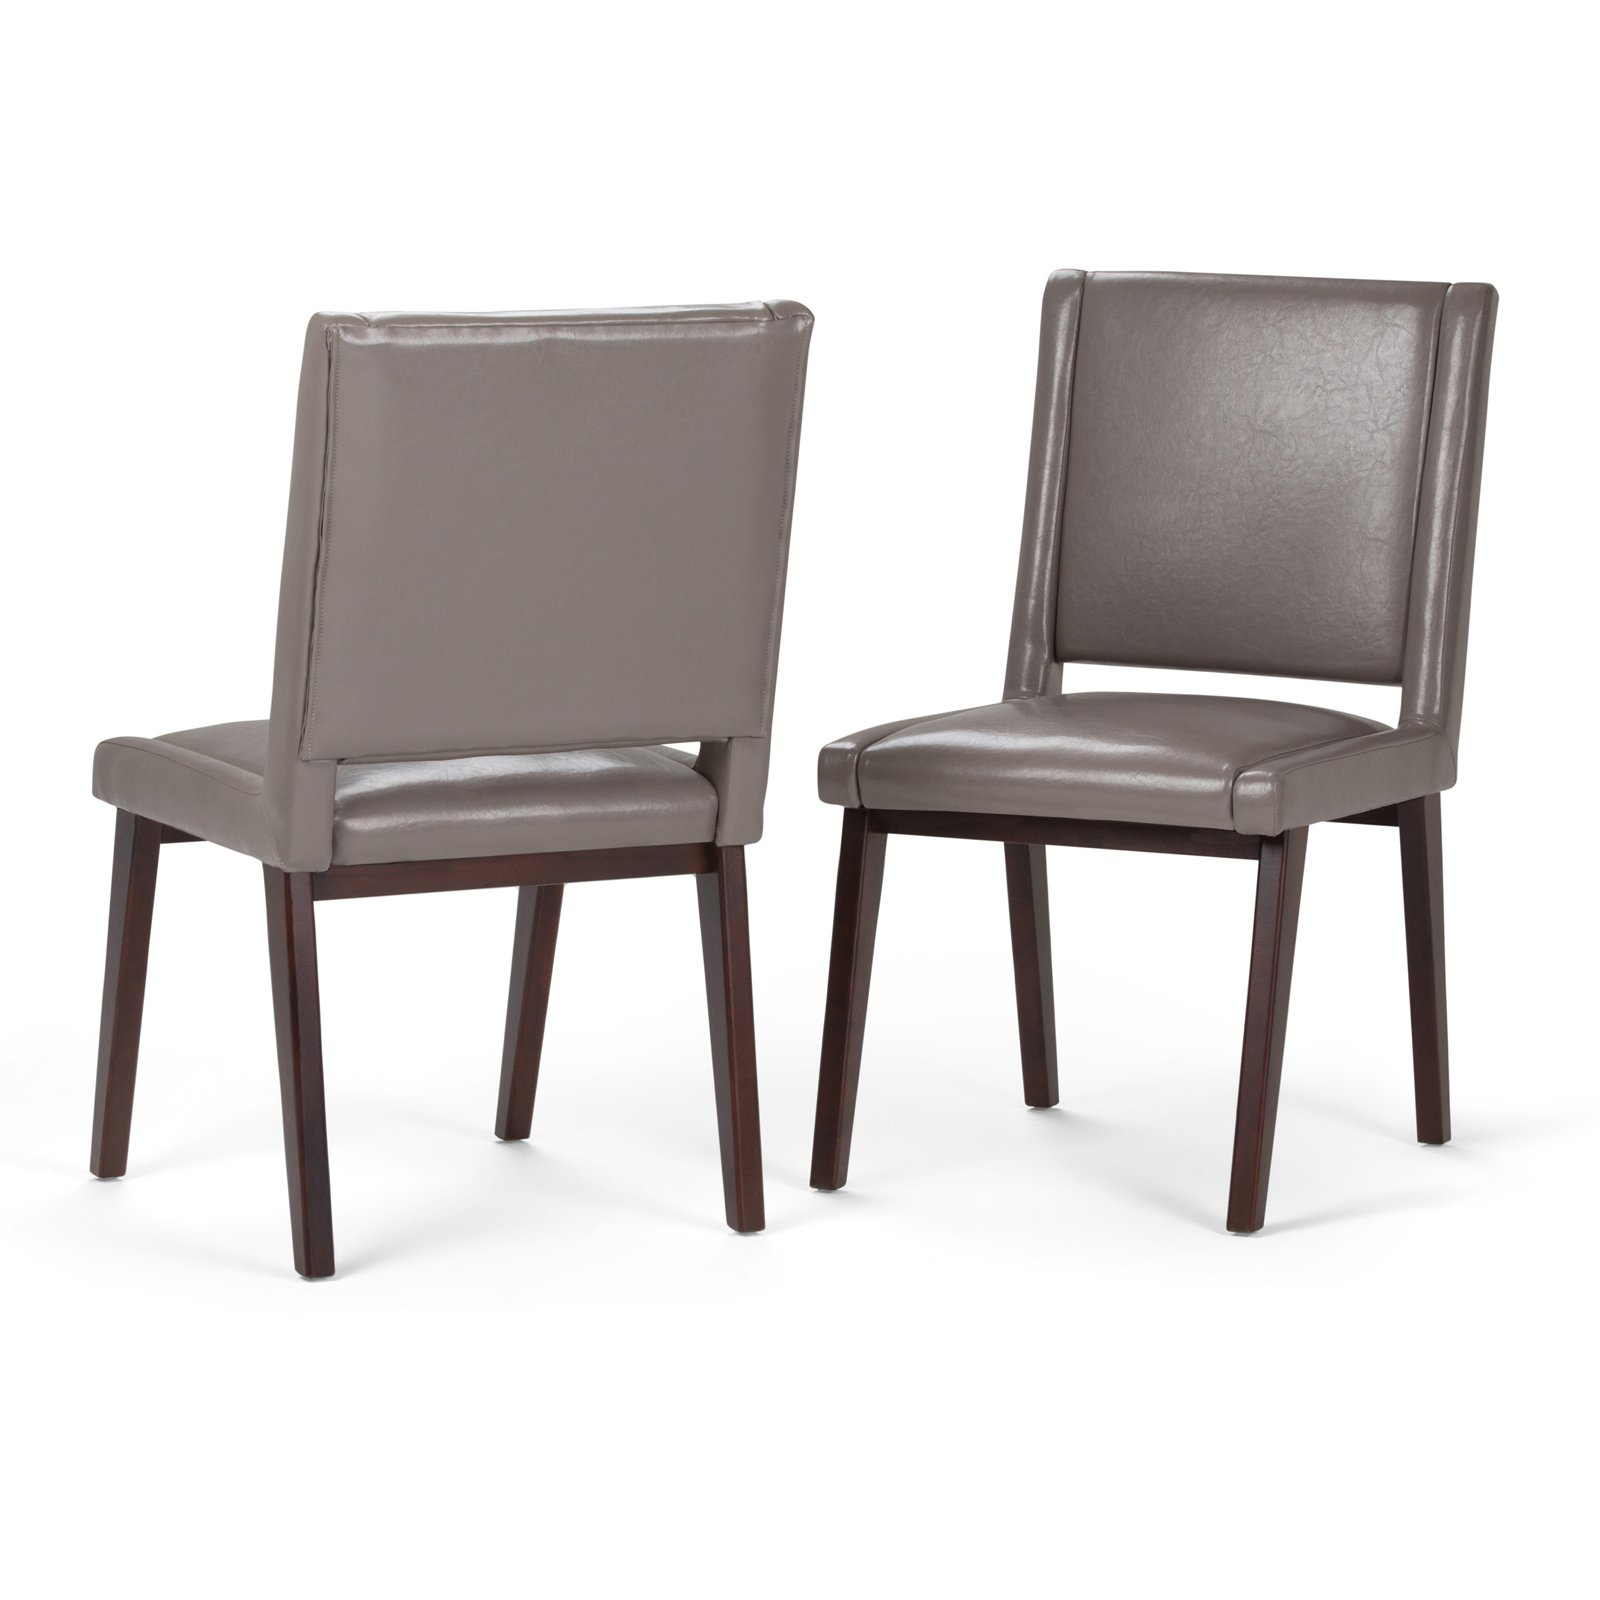 Simpli Home Draper Mid Century Deluxe Dining Chair (Set of 2)